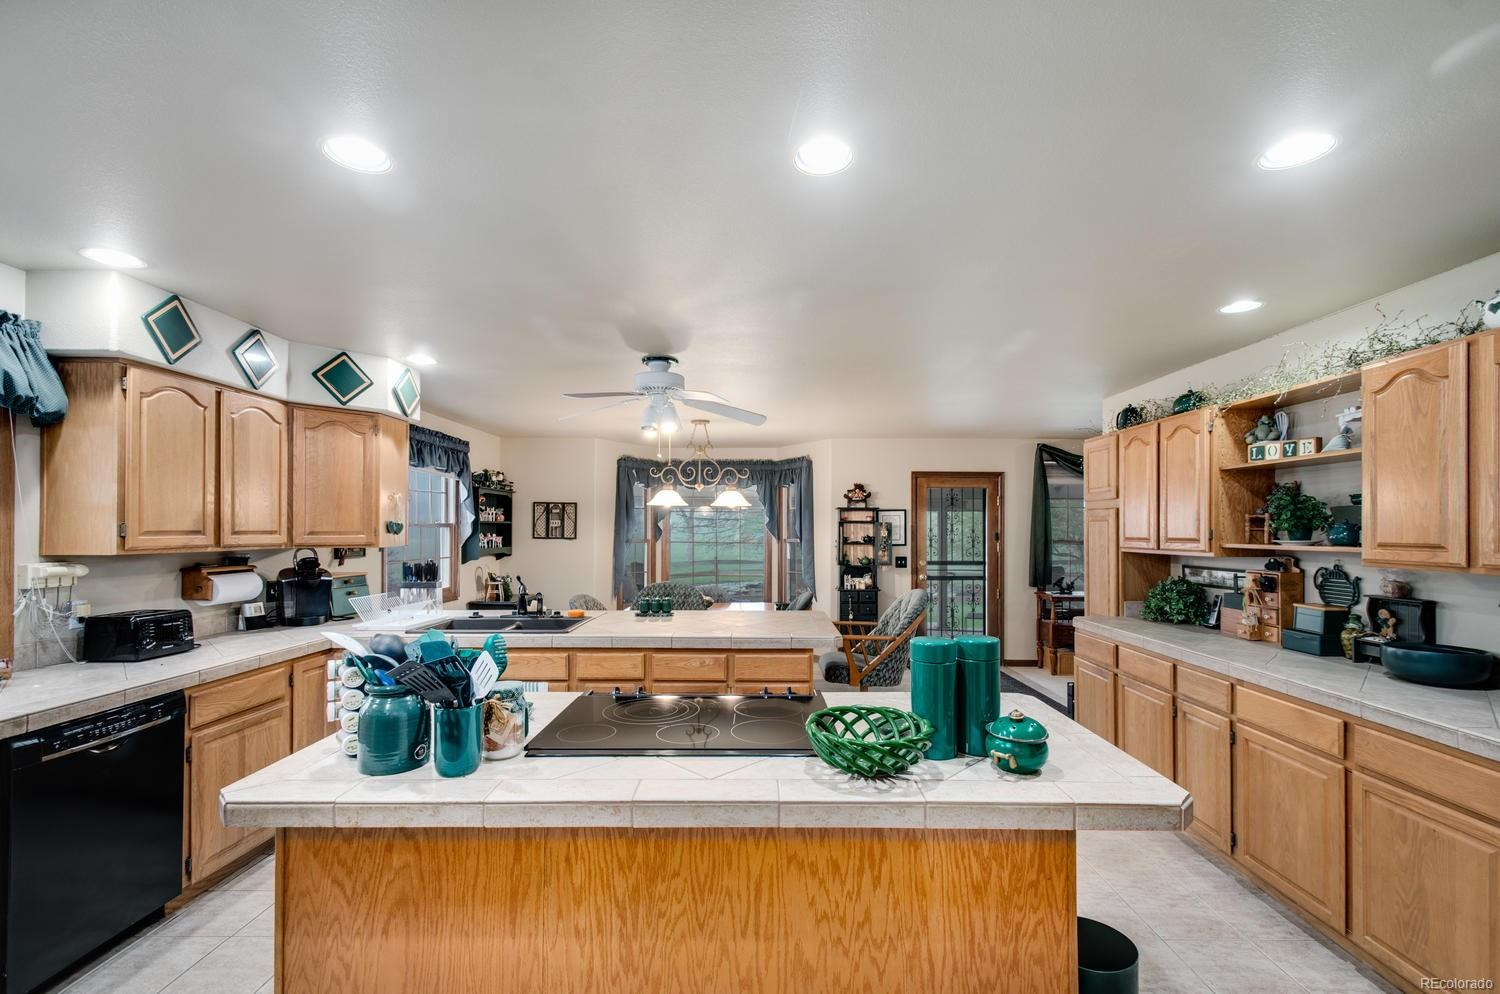 Gourmet kitchen with tons of counter and cabinet space!